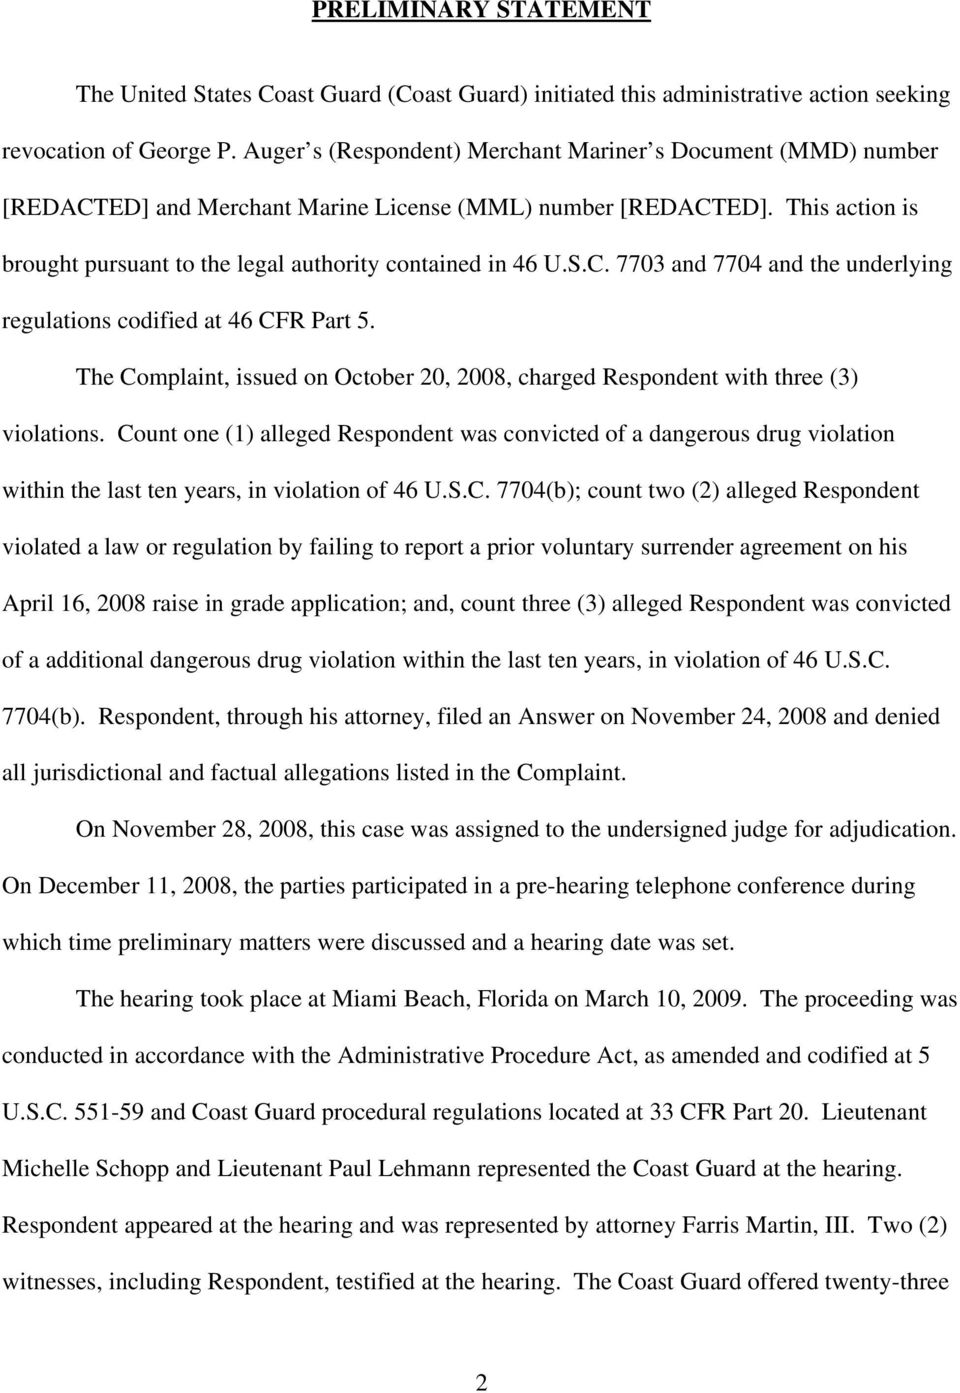 S.C. 7703 and 7704 and the underlying regulations codified at 46 CFR Part 5. The Complaint, issued on October 20, 2008, charged Respondent with three (3) violations.